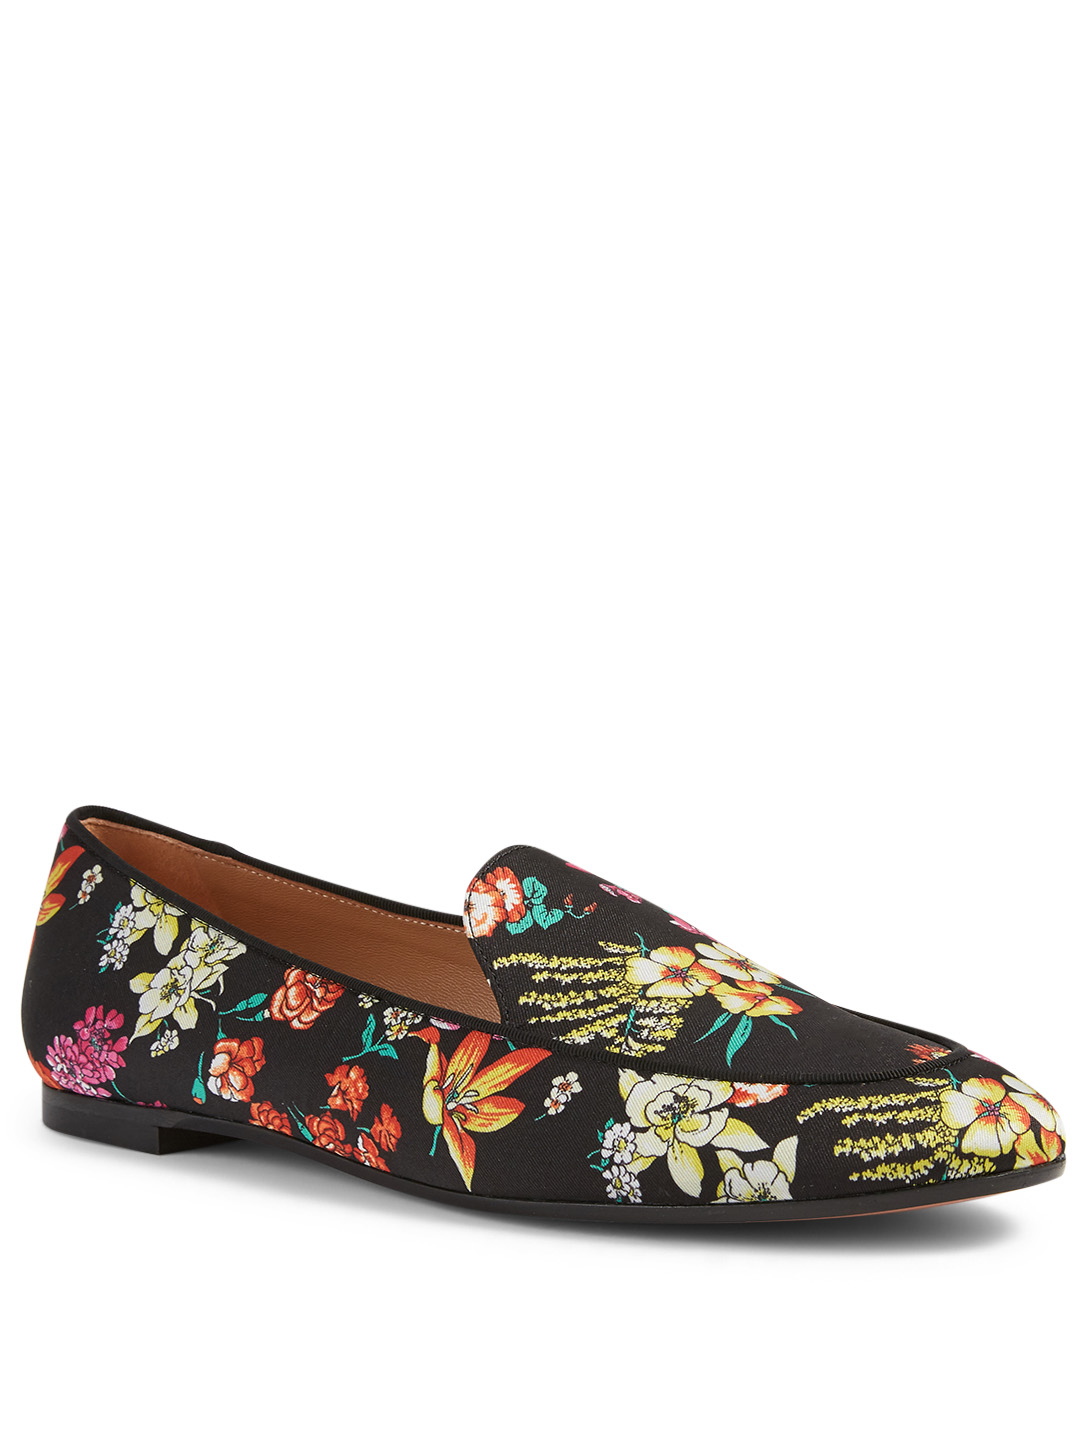 AQUAZZURA Purist Fabric Moccasins In Floral Print Women's Black